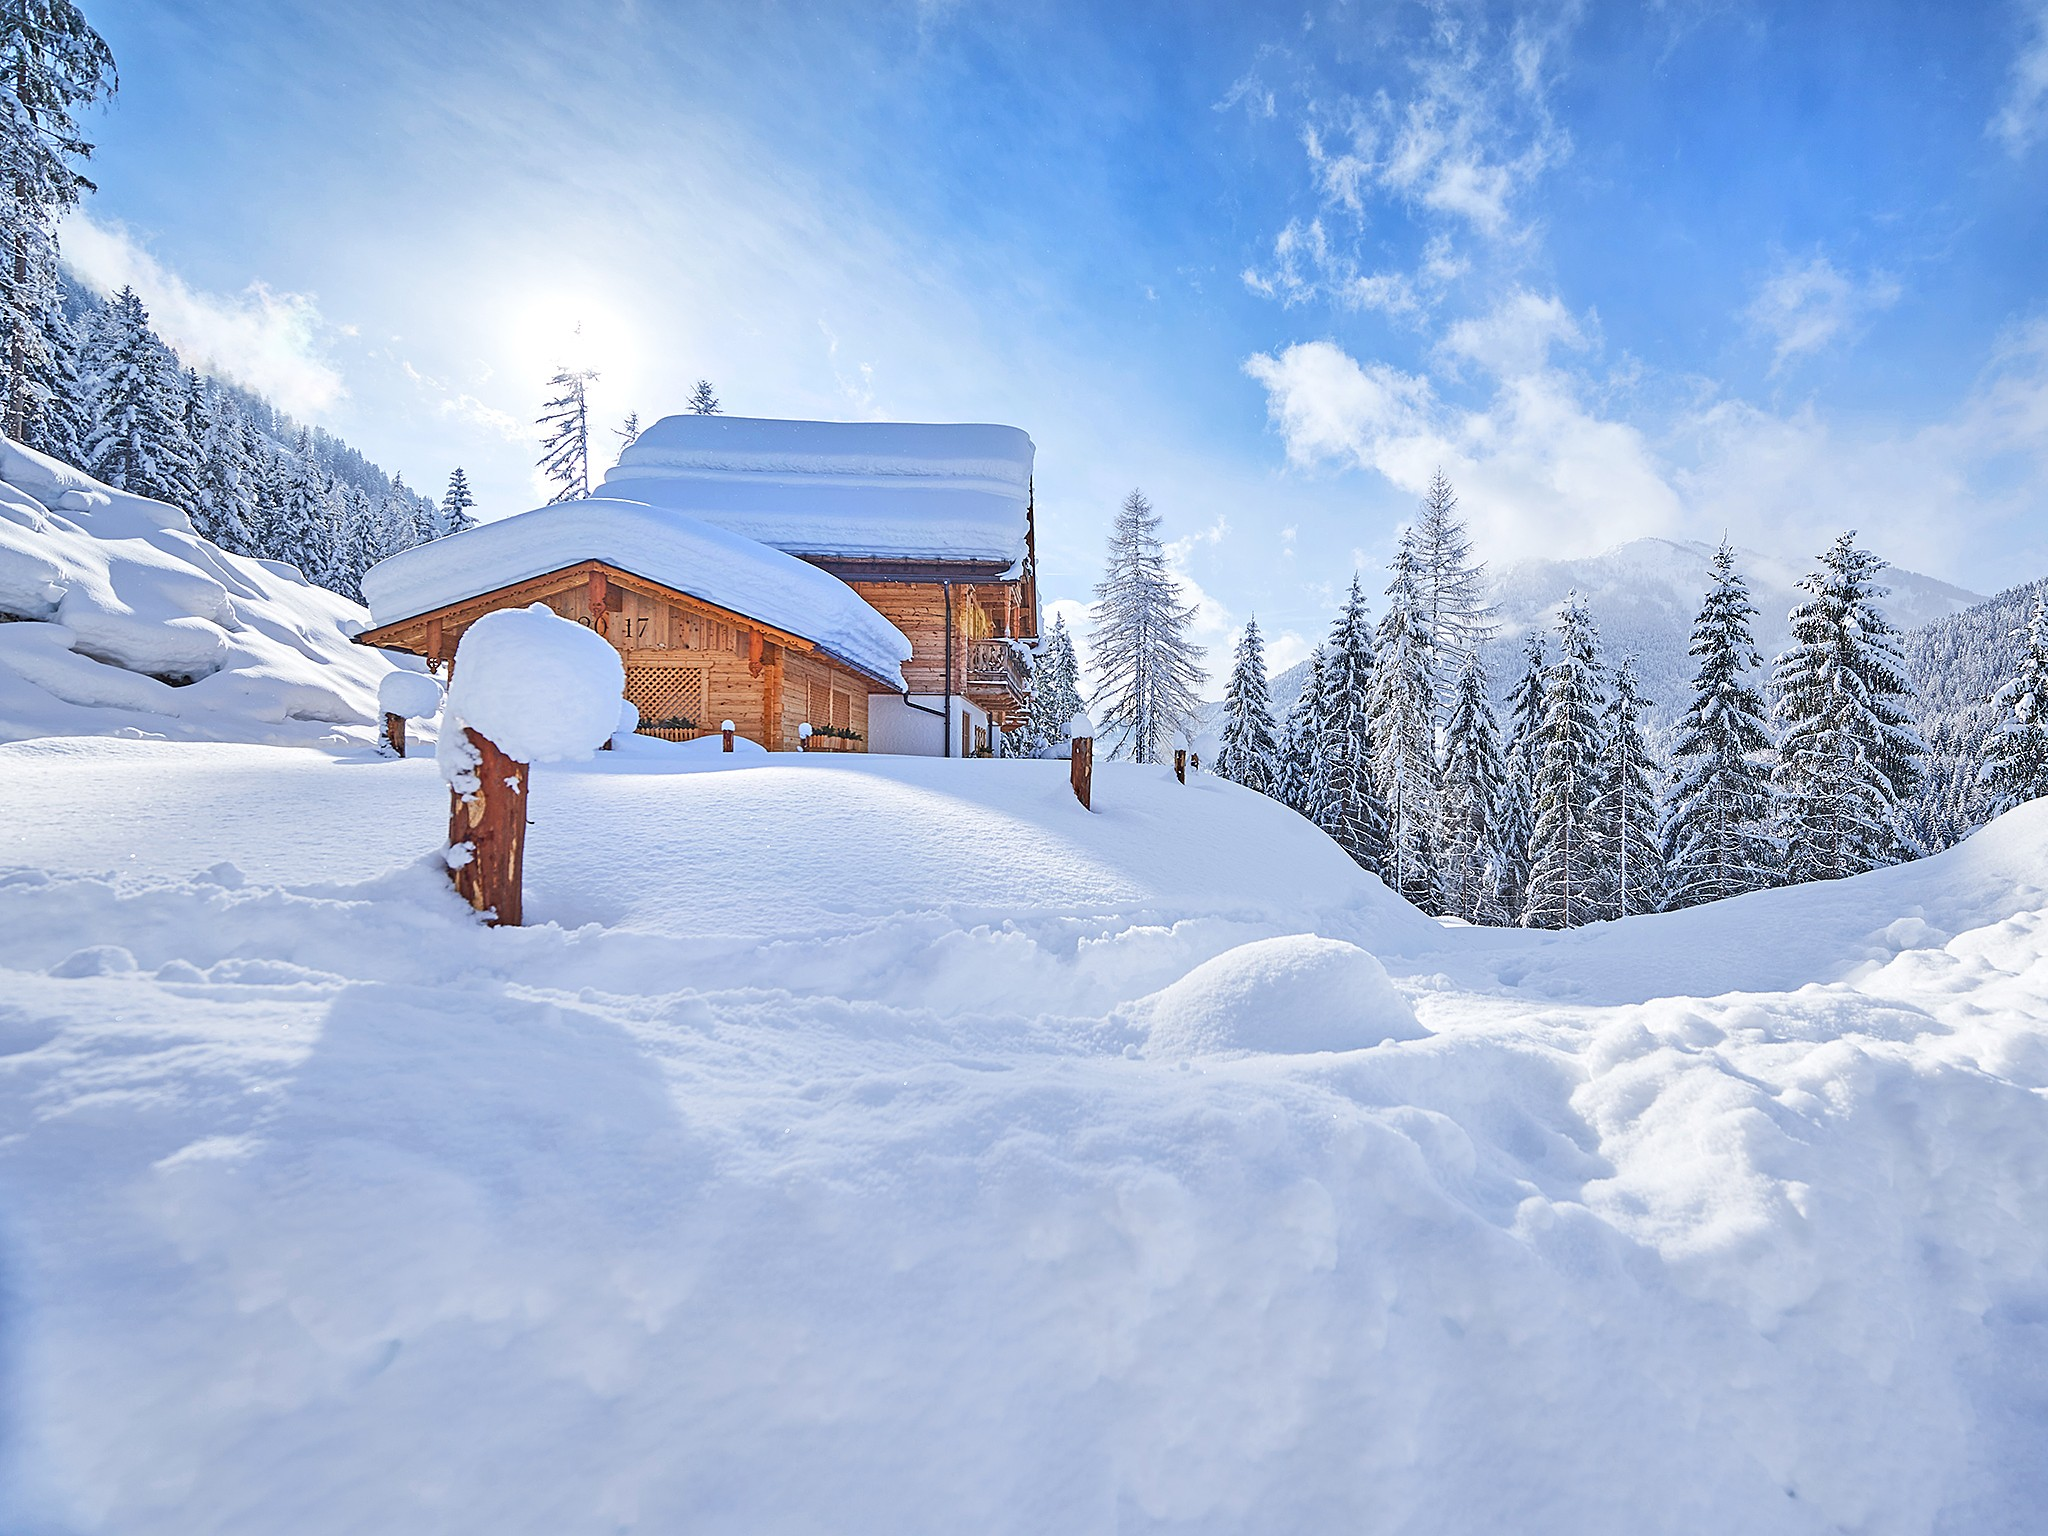 Dachstein Dream Lodge